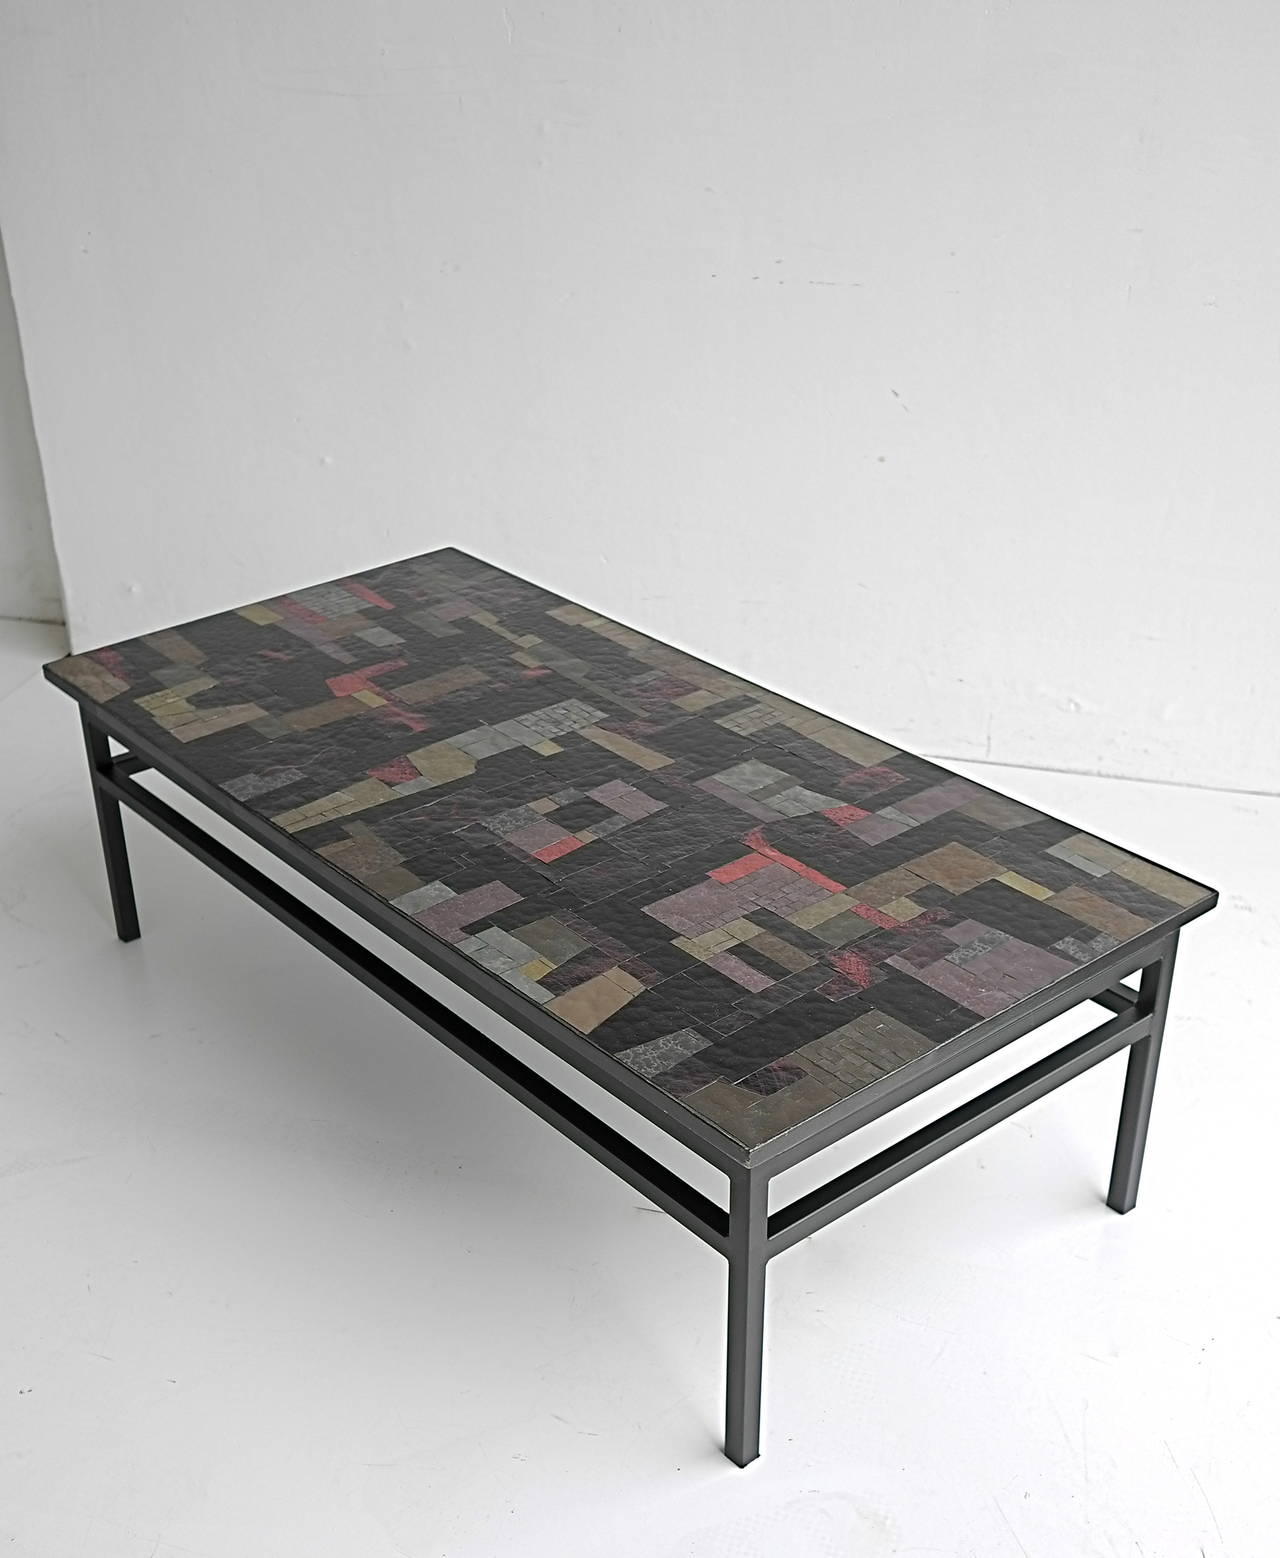 Pia Manu Multi Colored Glass Art Coffee Table For Sale At 1stdibs